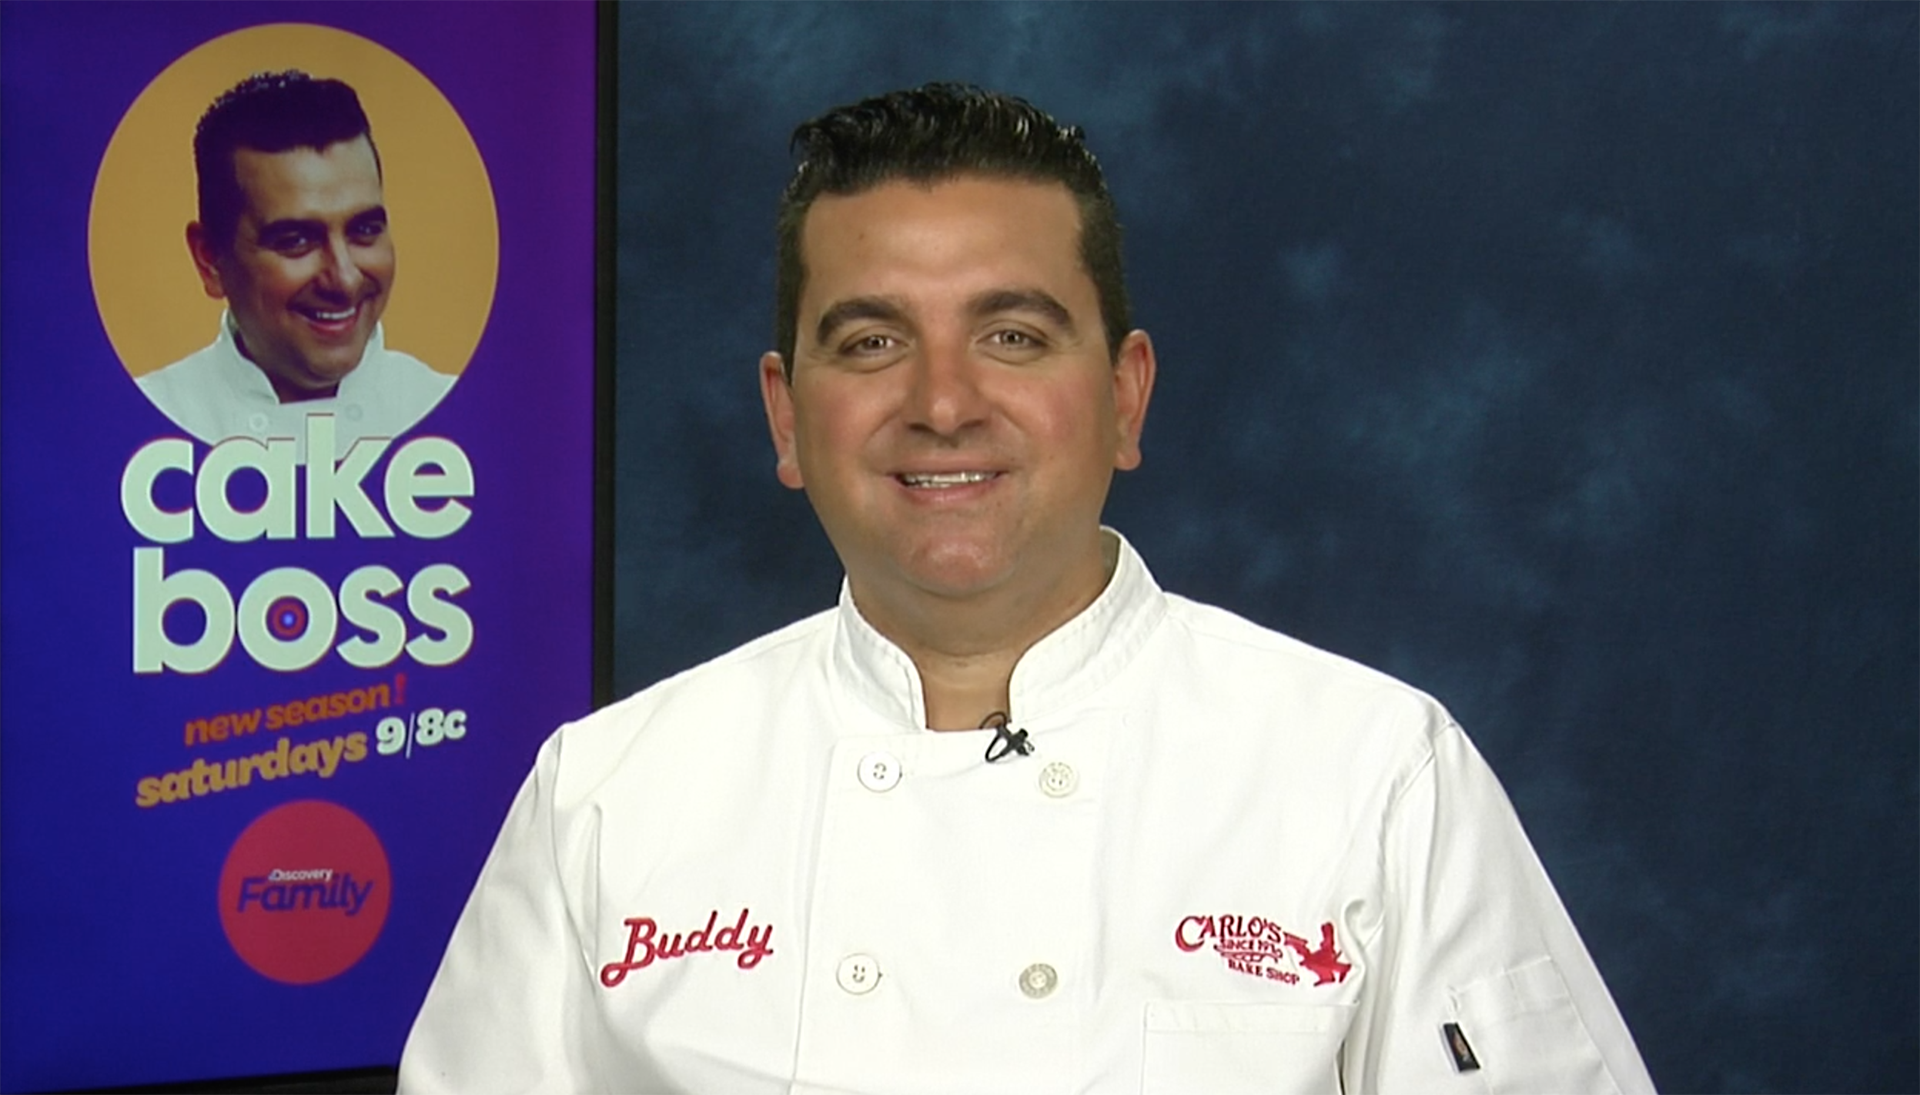 Cake Boss Screen Shot.png